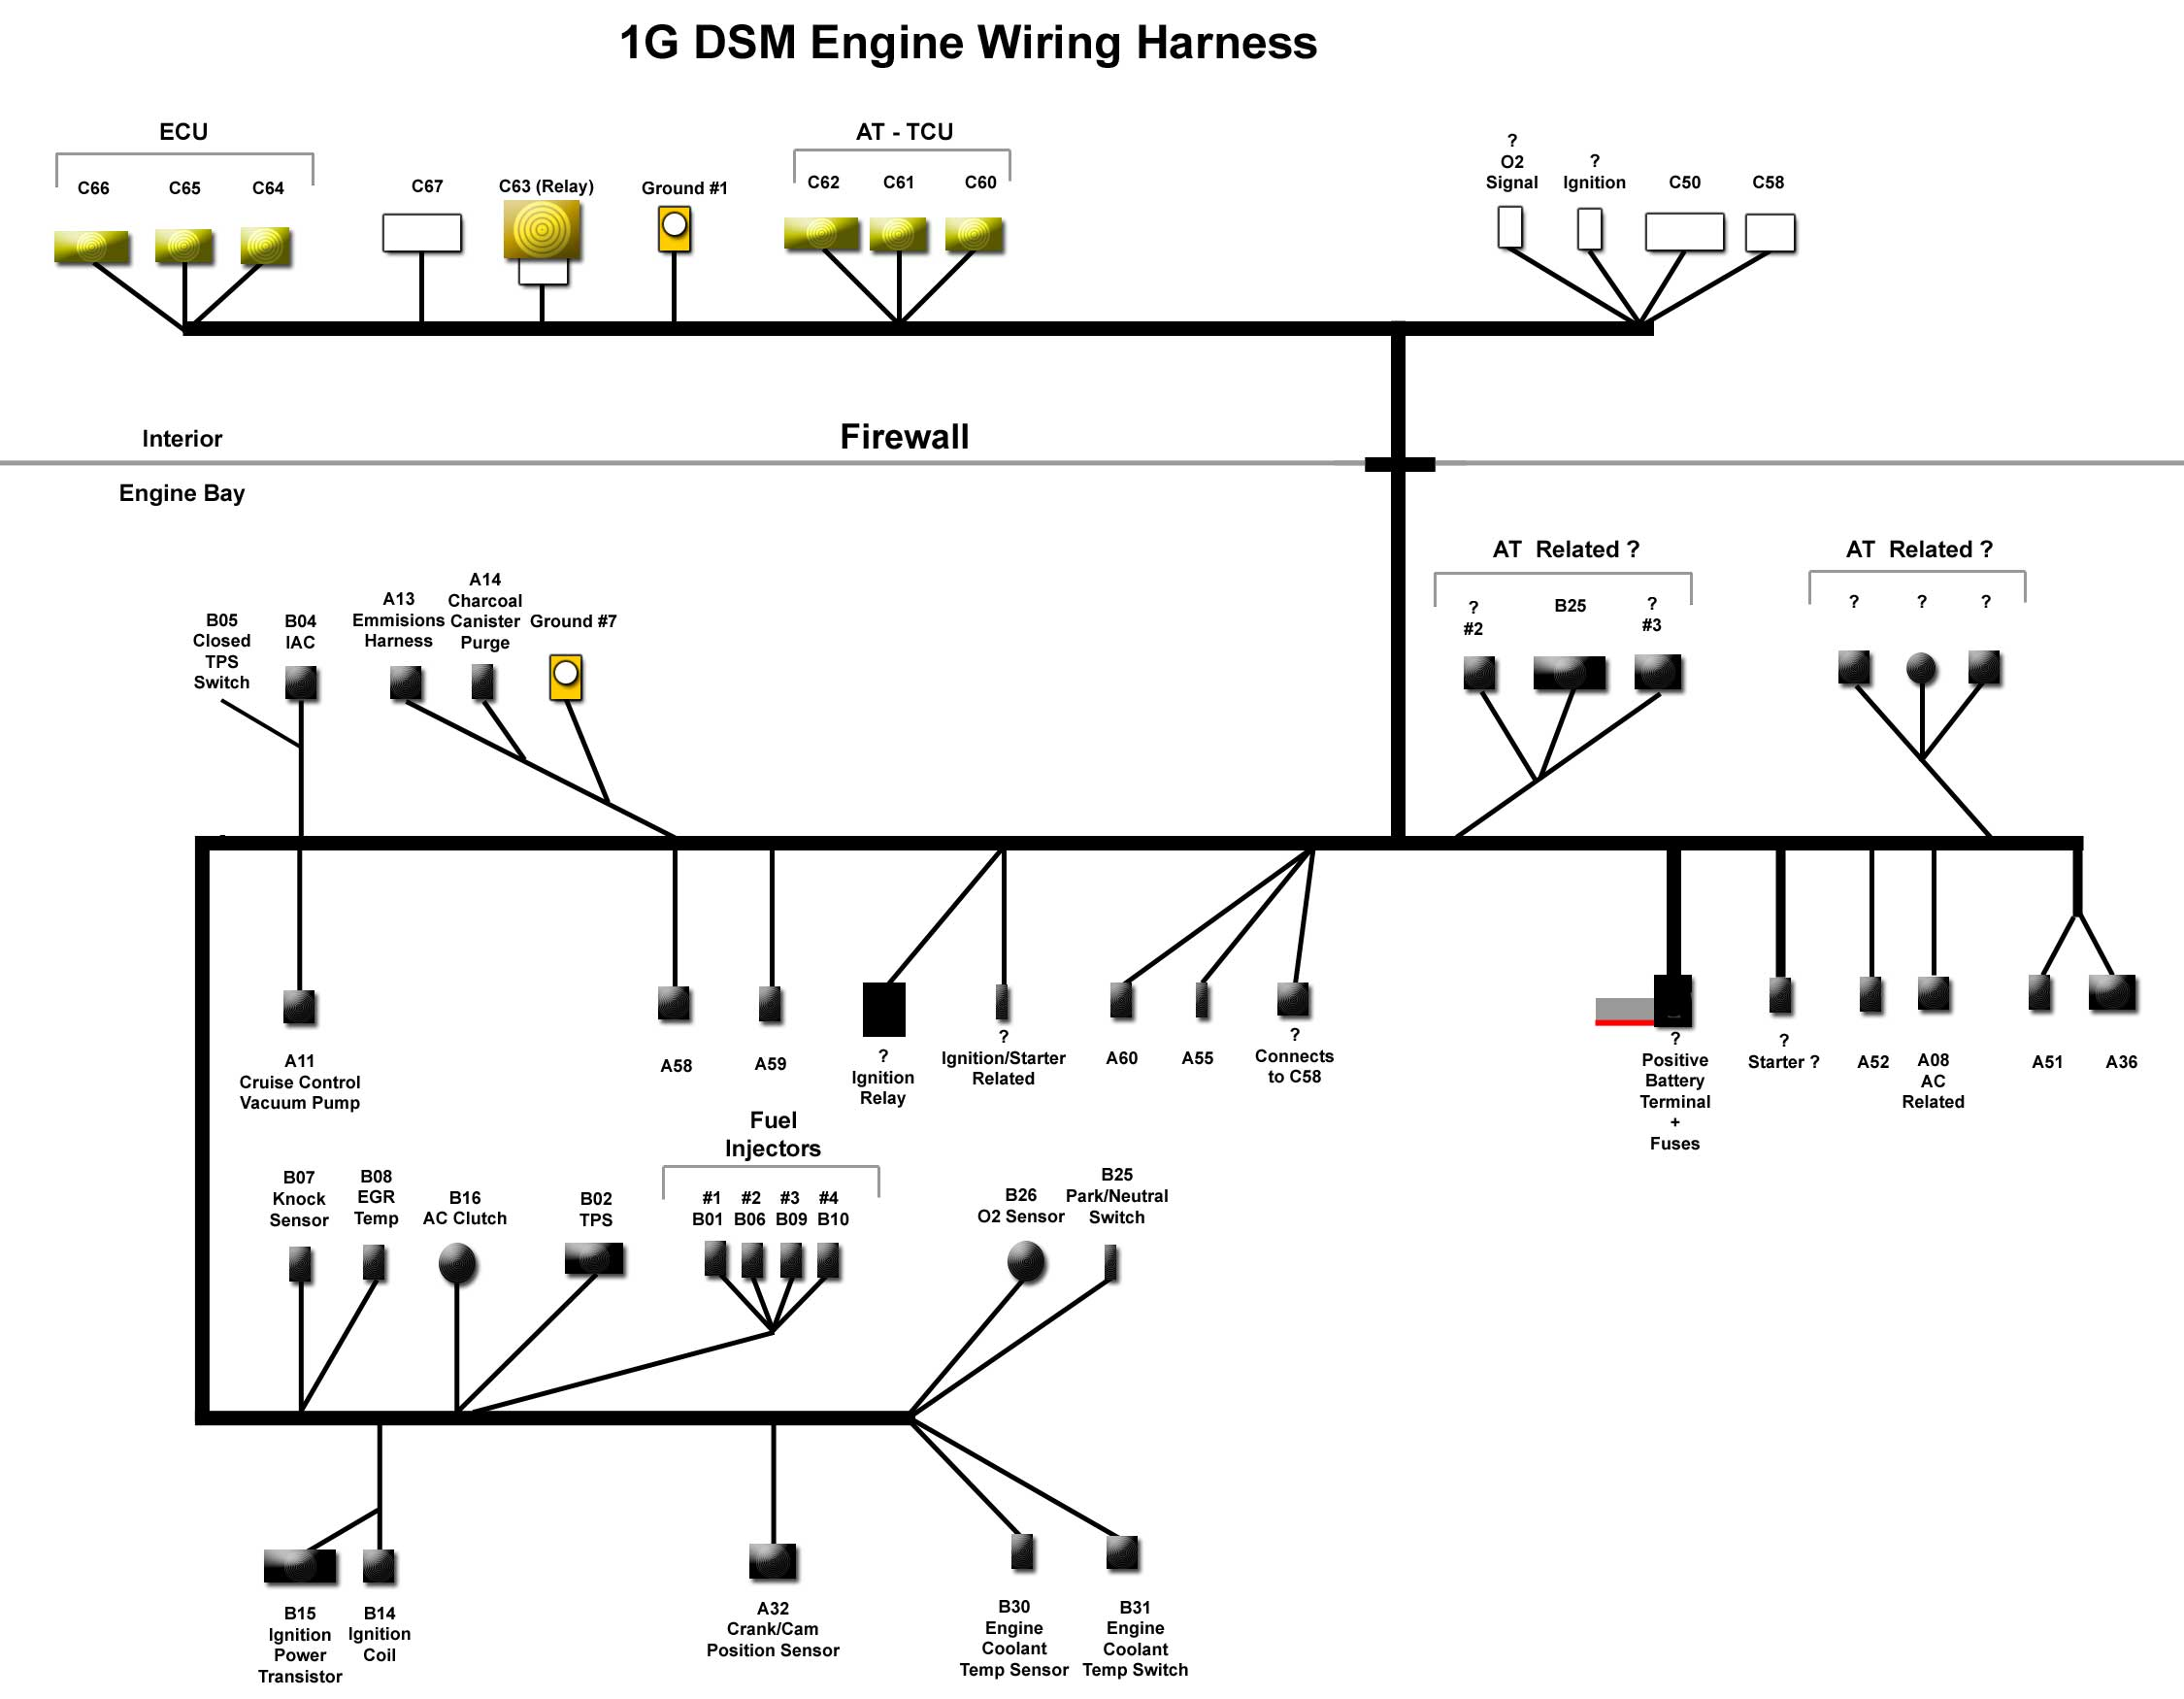 1G DSM EngineHarness 4g63 wiring diagram 4g63 intake manifold \u2022 free wiring diagrams 2g dsm wiring harness at soozxer.org